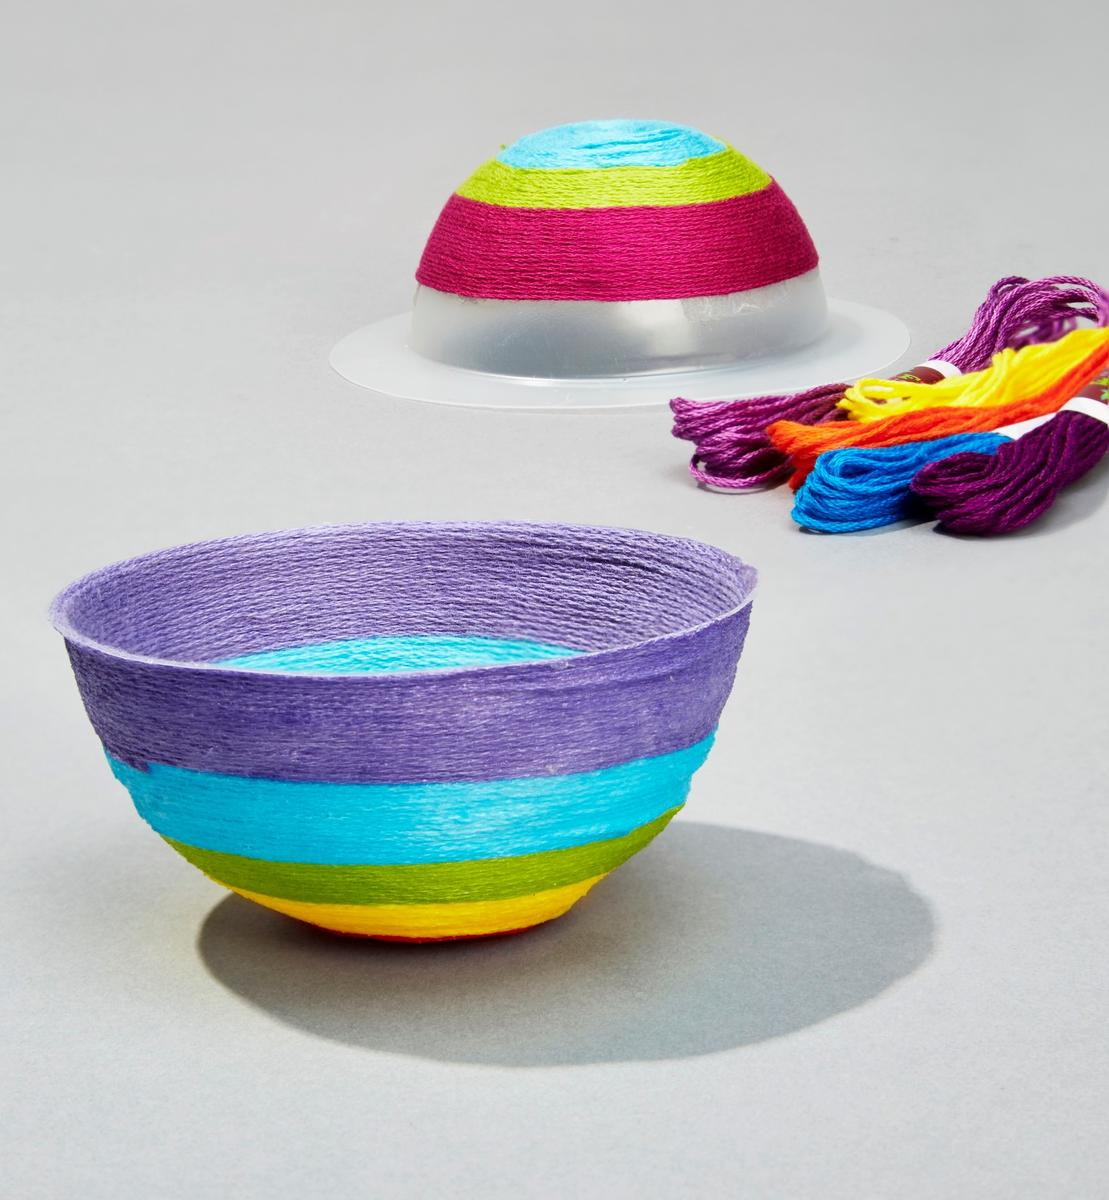 Best Gifts Craft-Tastic Mini Thread Bowl Kit